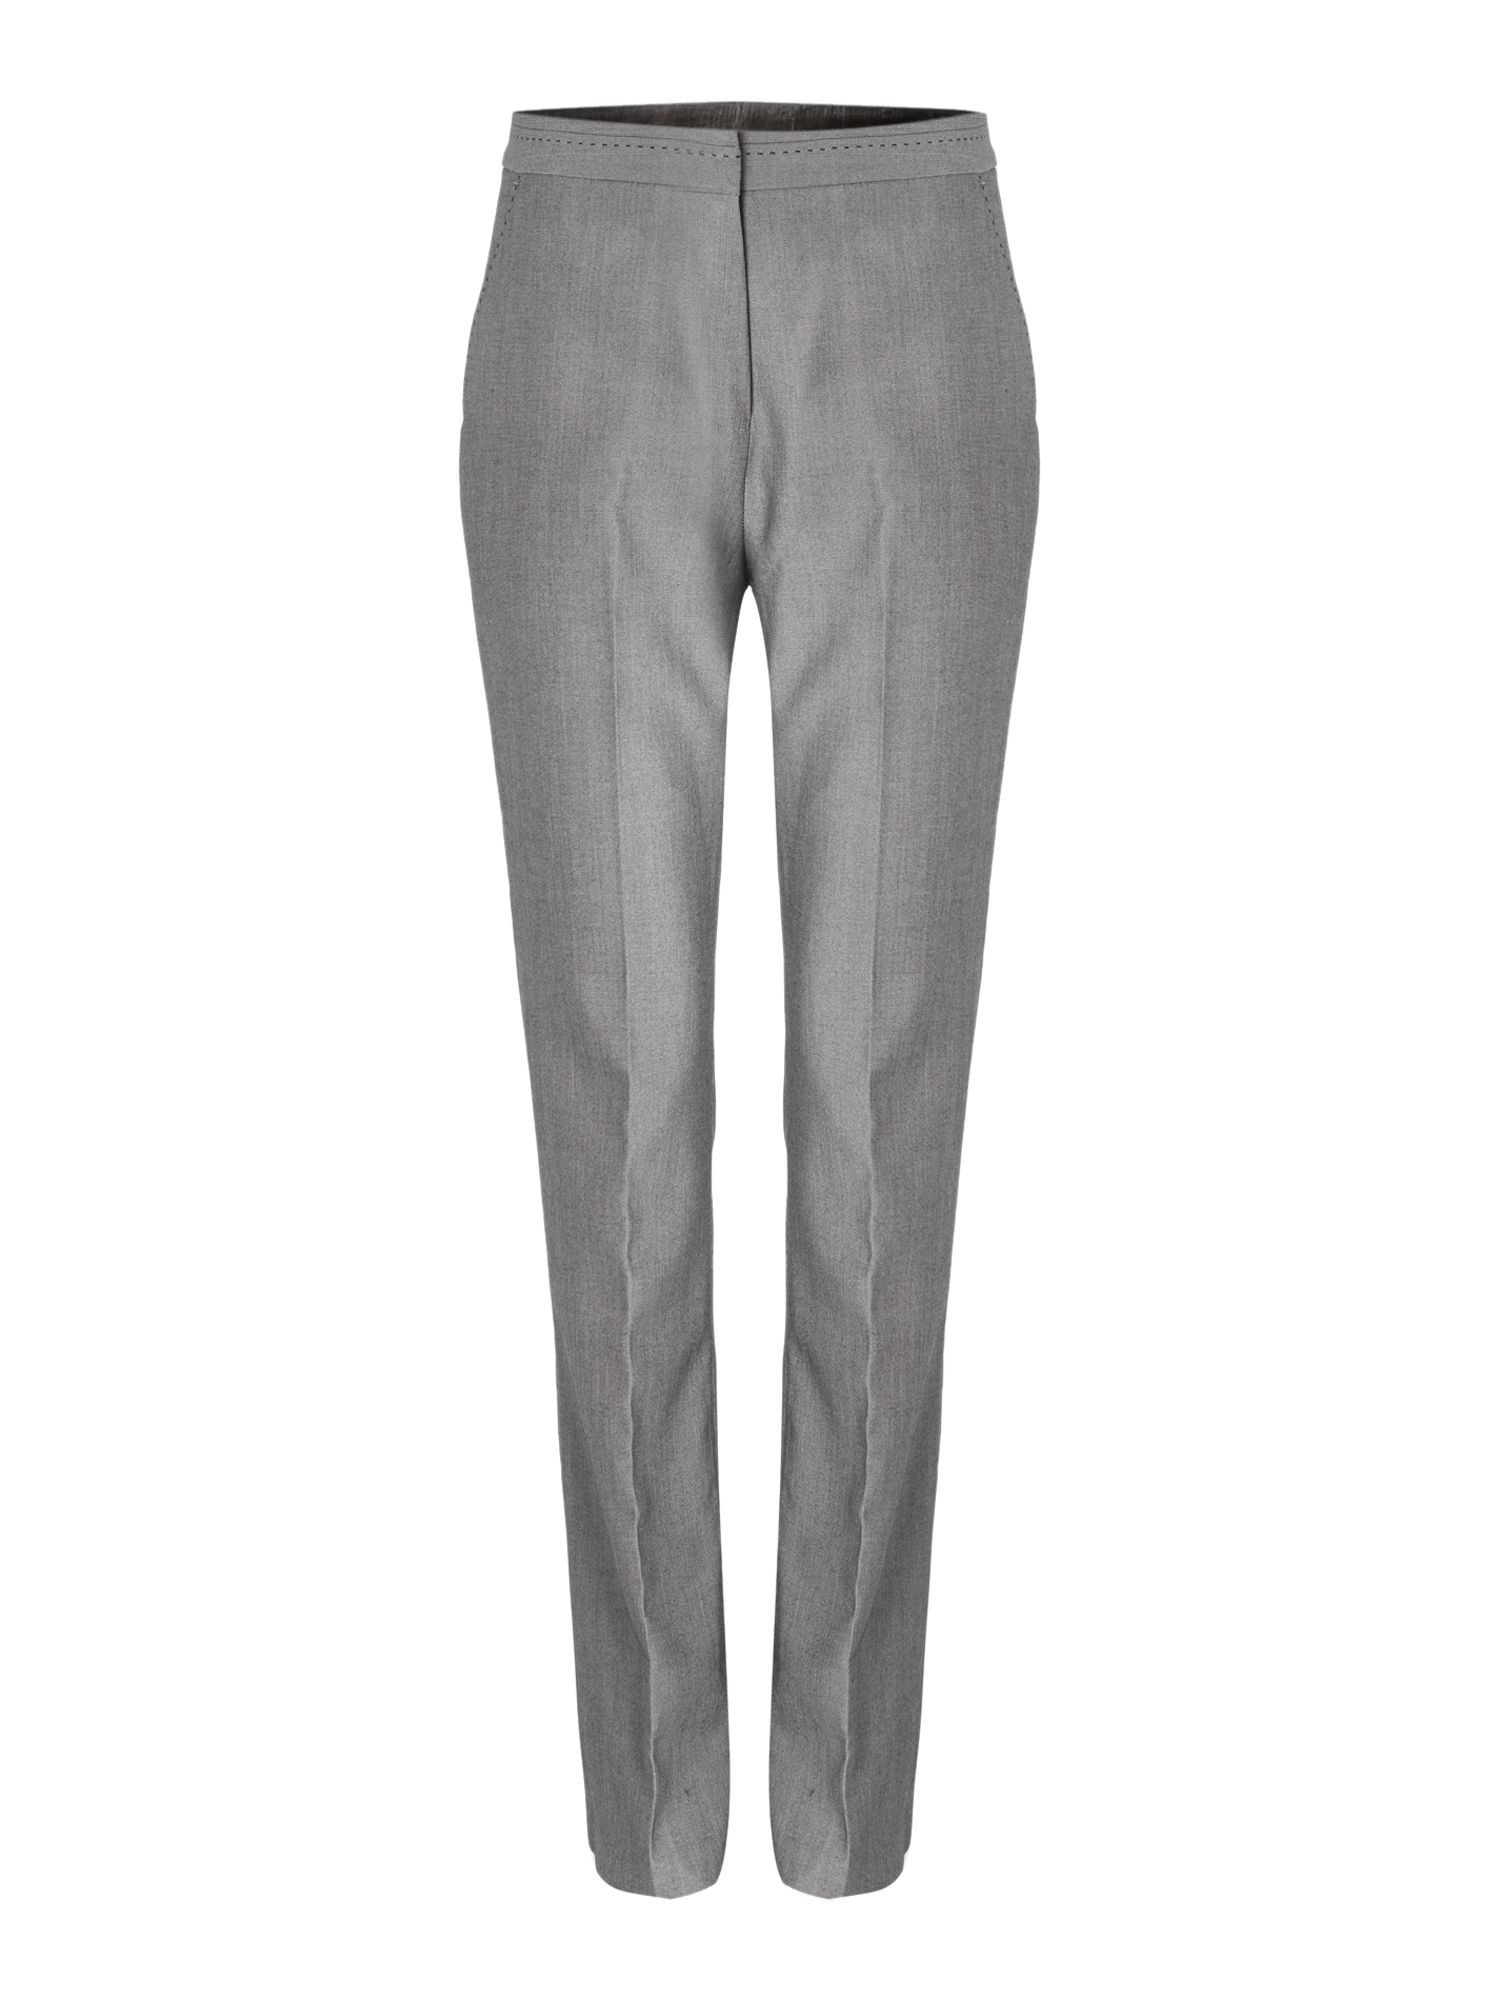 Textured suit trouser